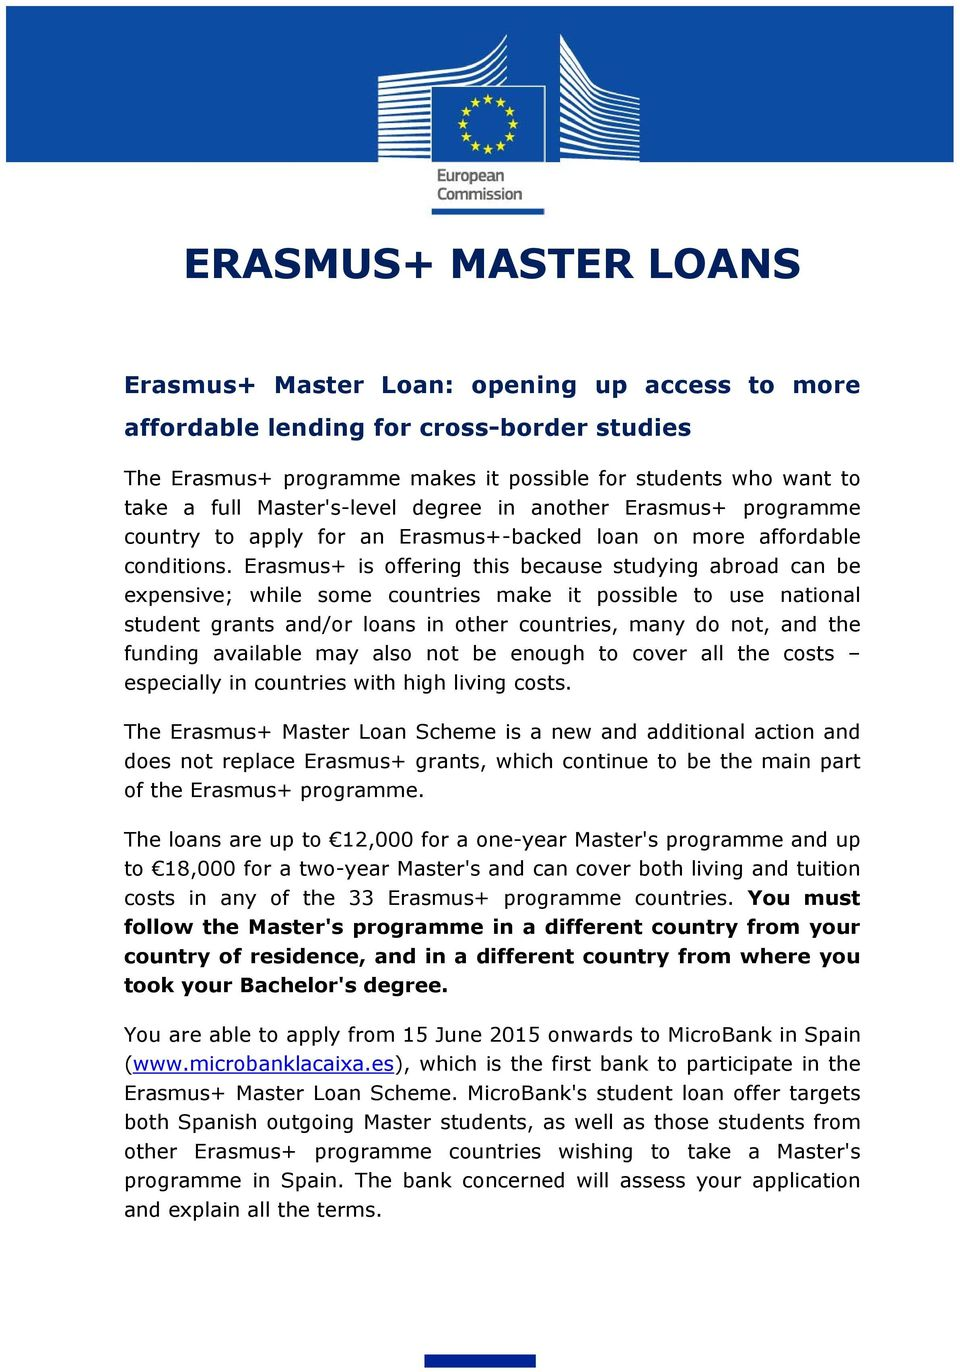 Erasmus+ is offering this because studying abroad can be expensive; while some countries make it possible to use national student grants and/or loans in other countries, many do not, and the funding